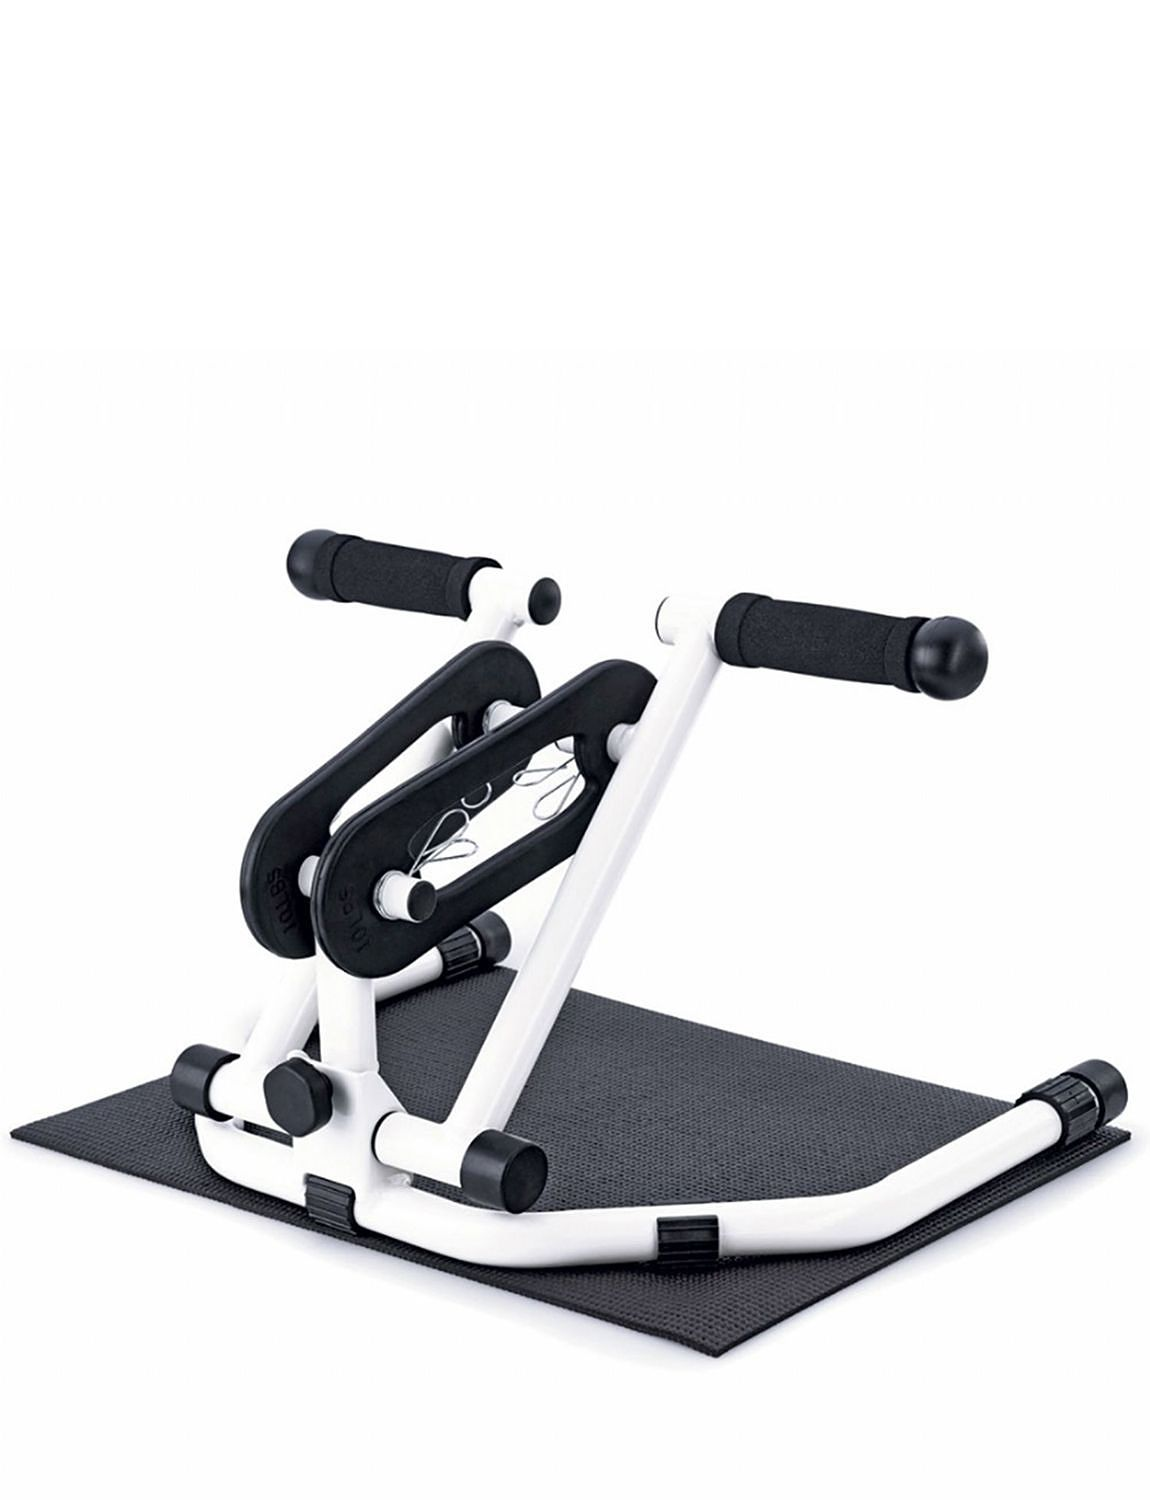 2 - In -1 Armchair Pedal Exerciser - Lifestyle Health ...